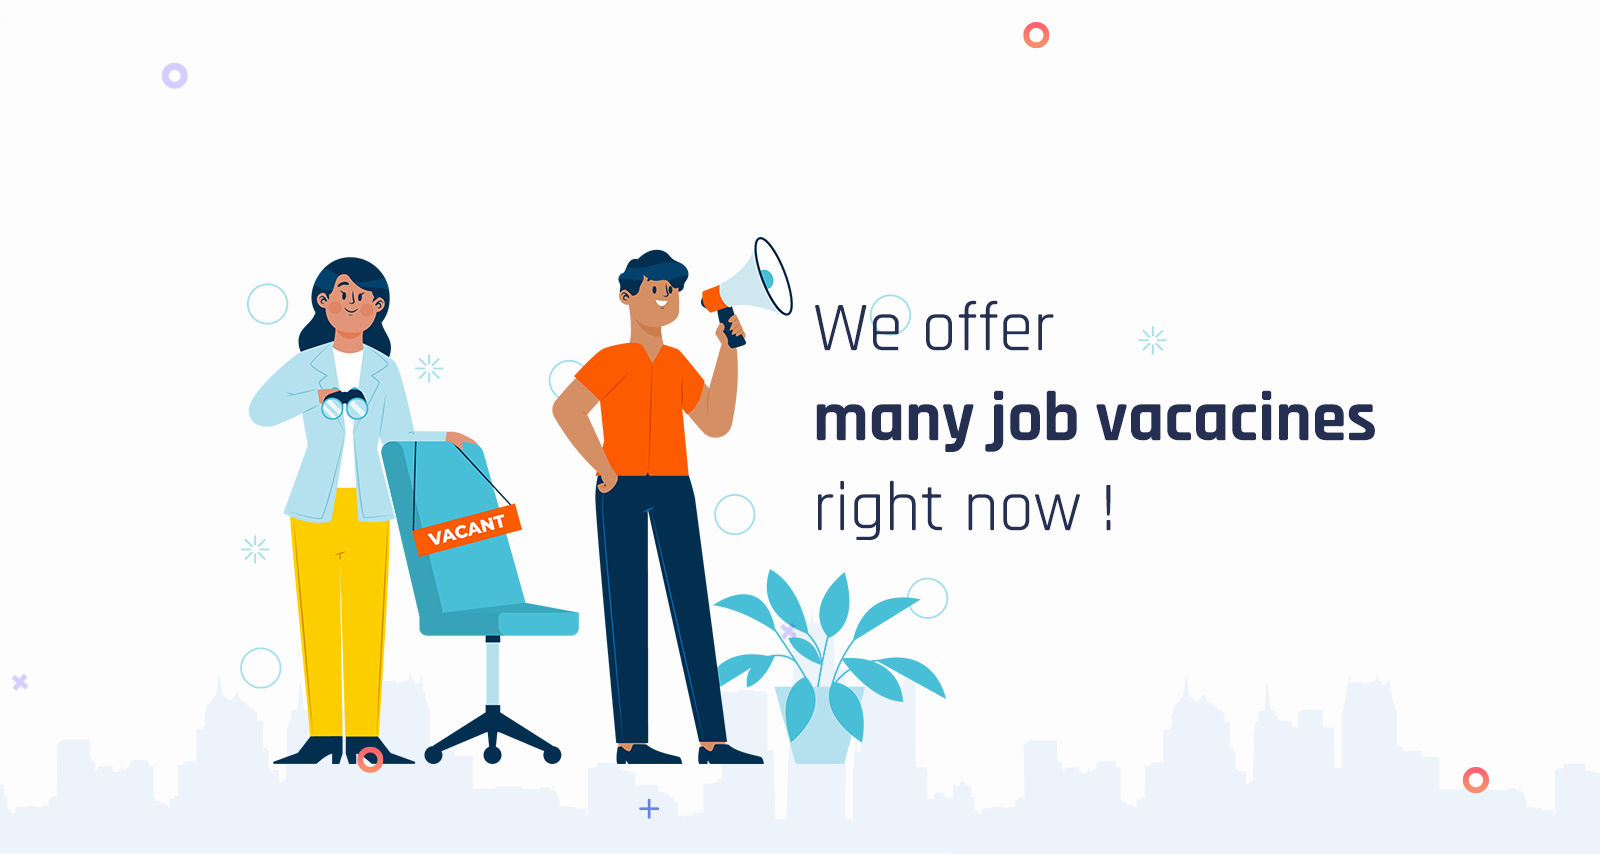 We offer many job vacancies right now